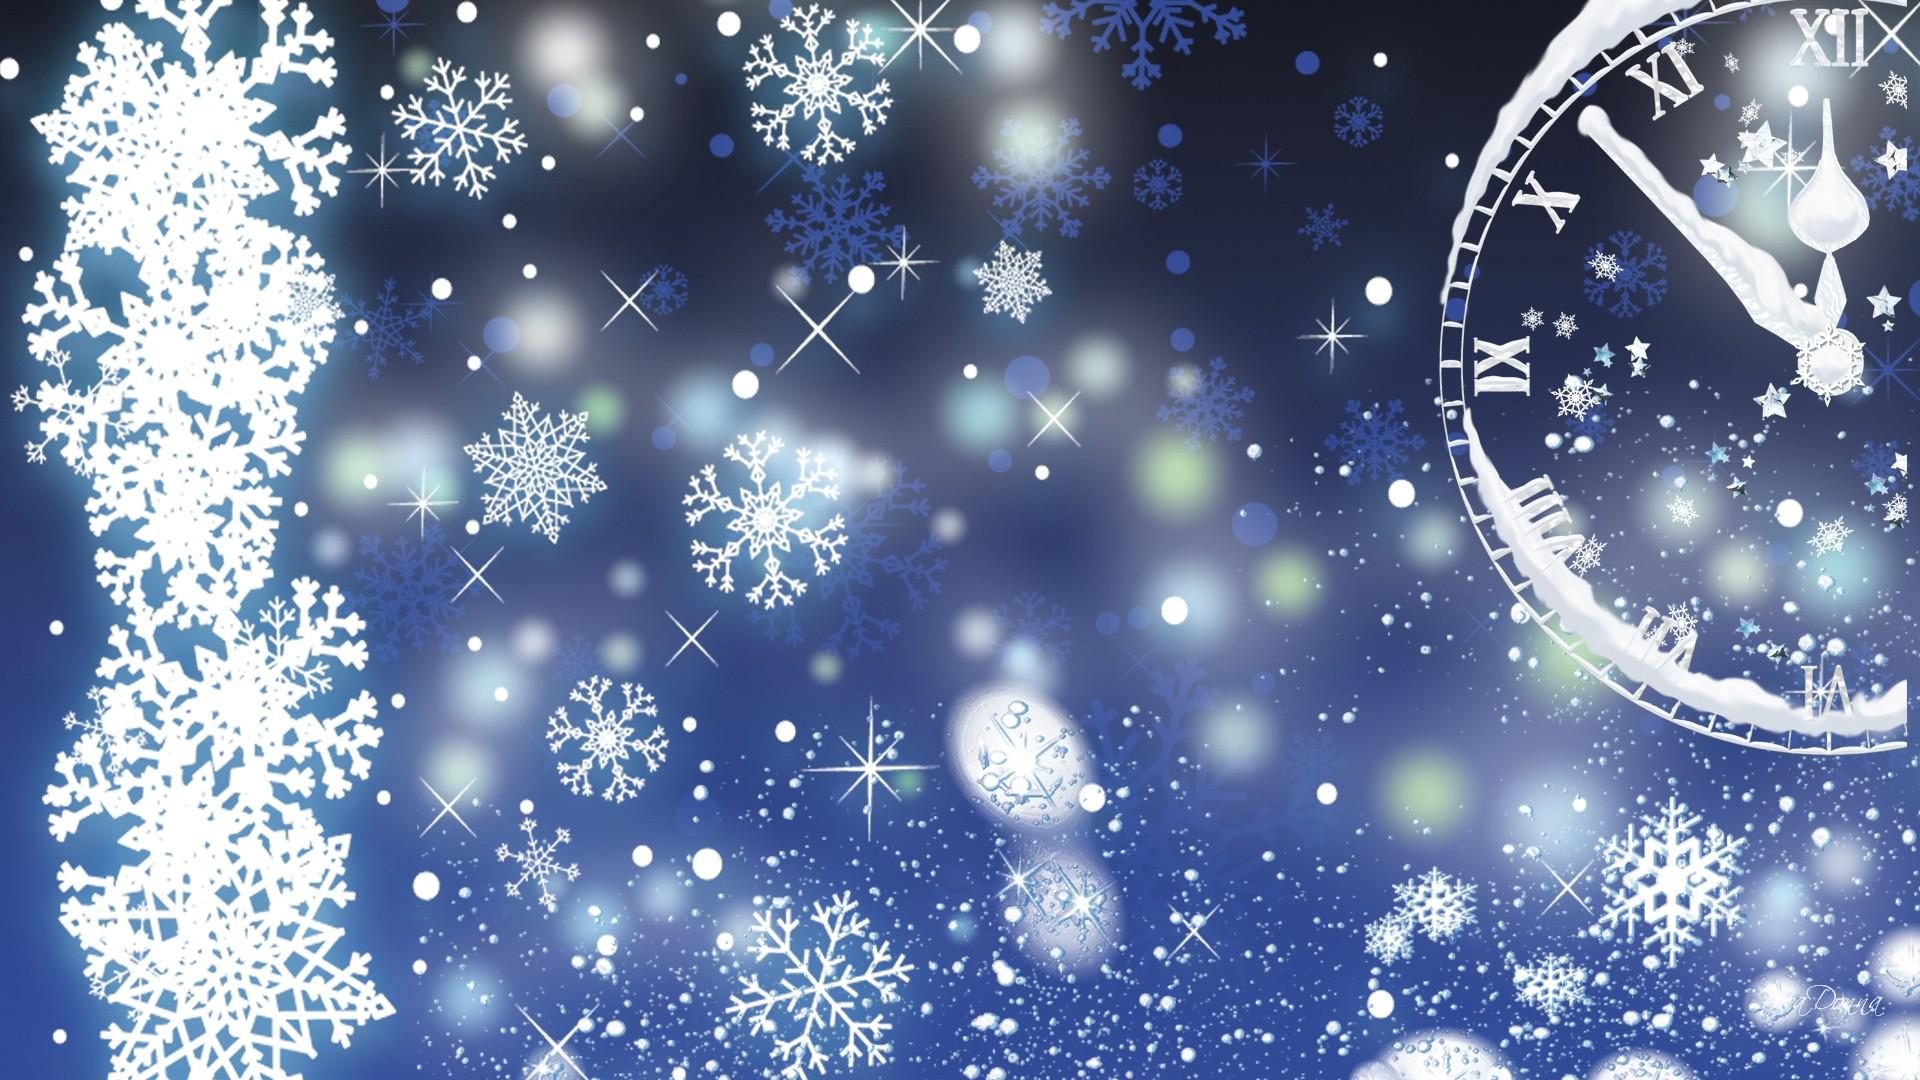 New Year's Eve Wallpapers